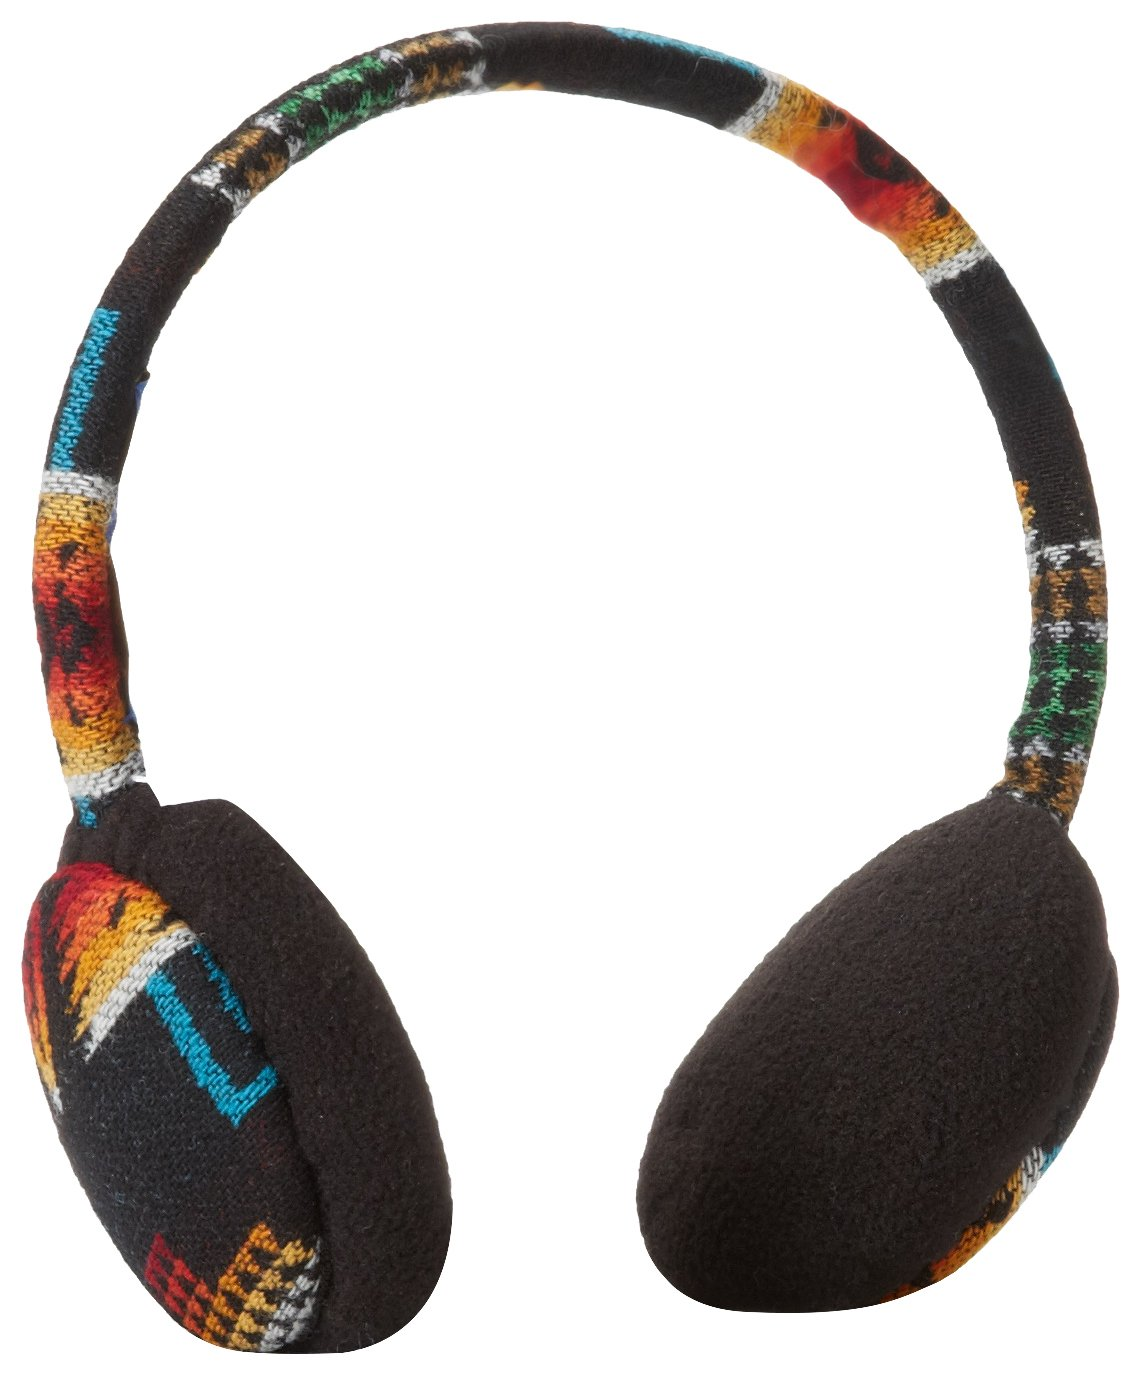 Pendleton Men's Earmuff, Black Mini, One Size